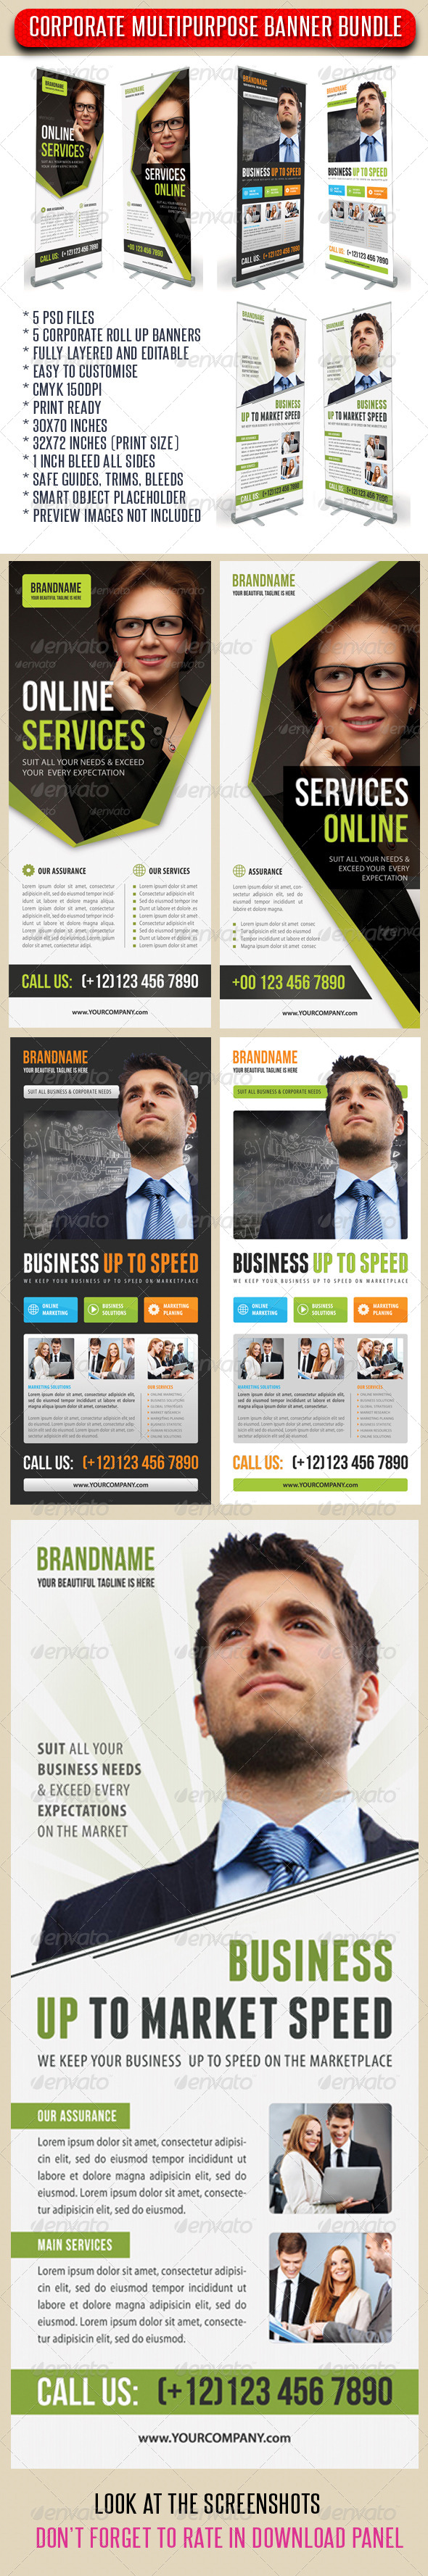 3 in 1 Corporate Rollup Banner Bundle 04 - Signage Print Templates